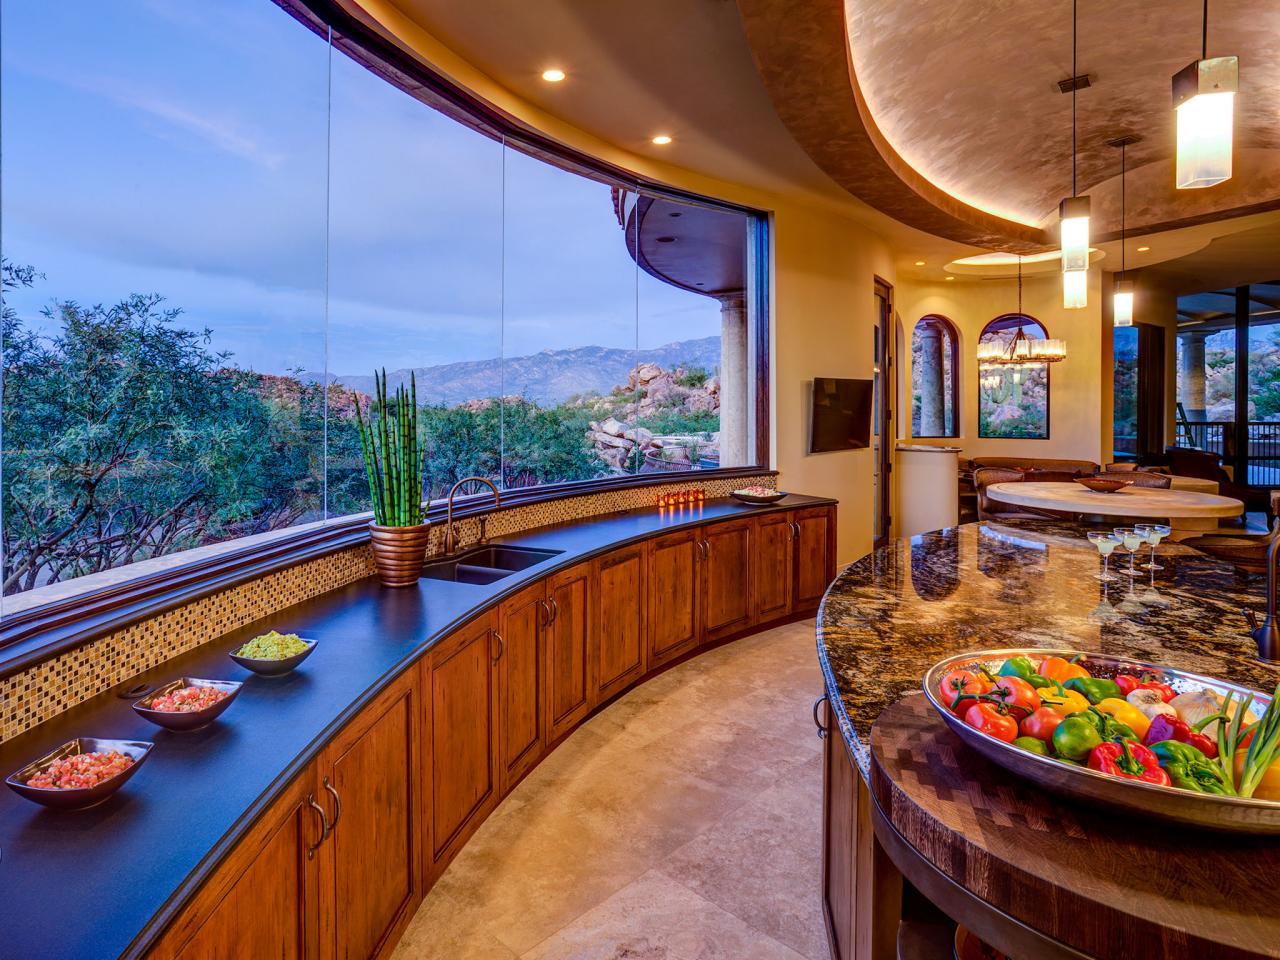 southwestern kitchen with a view lori carroll hgtv what was the biggest issue the design addressed